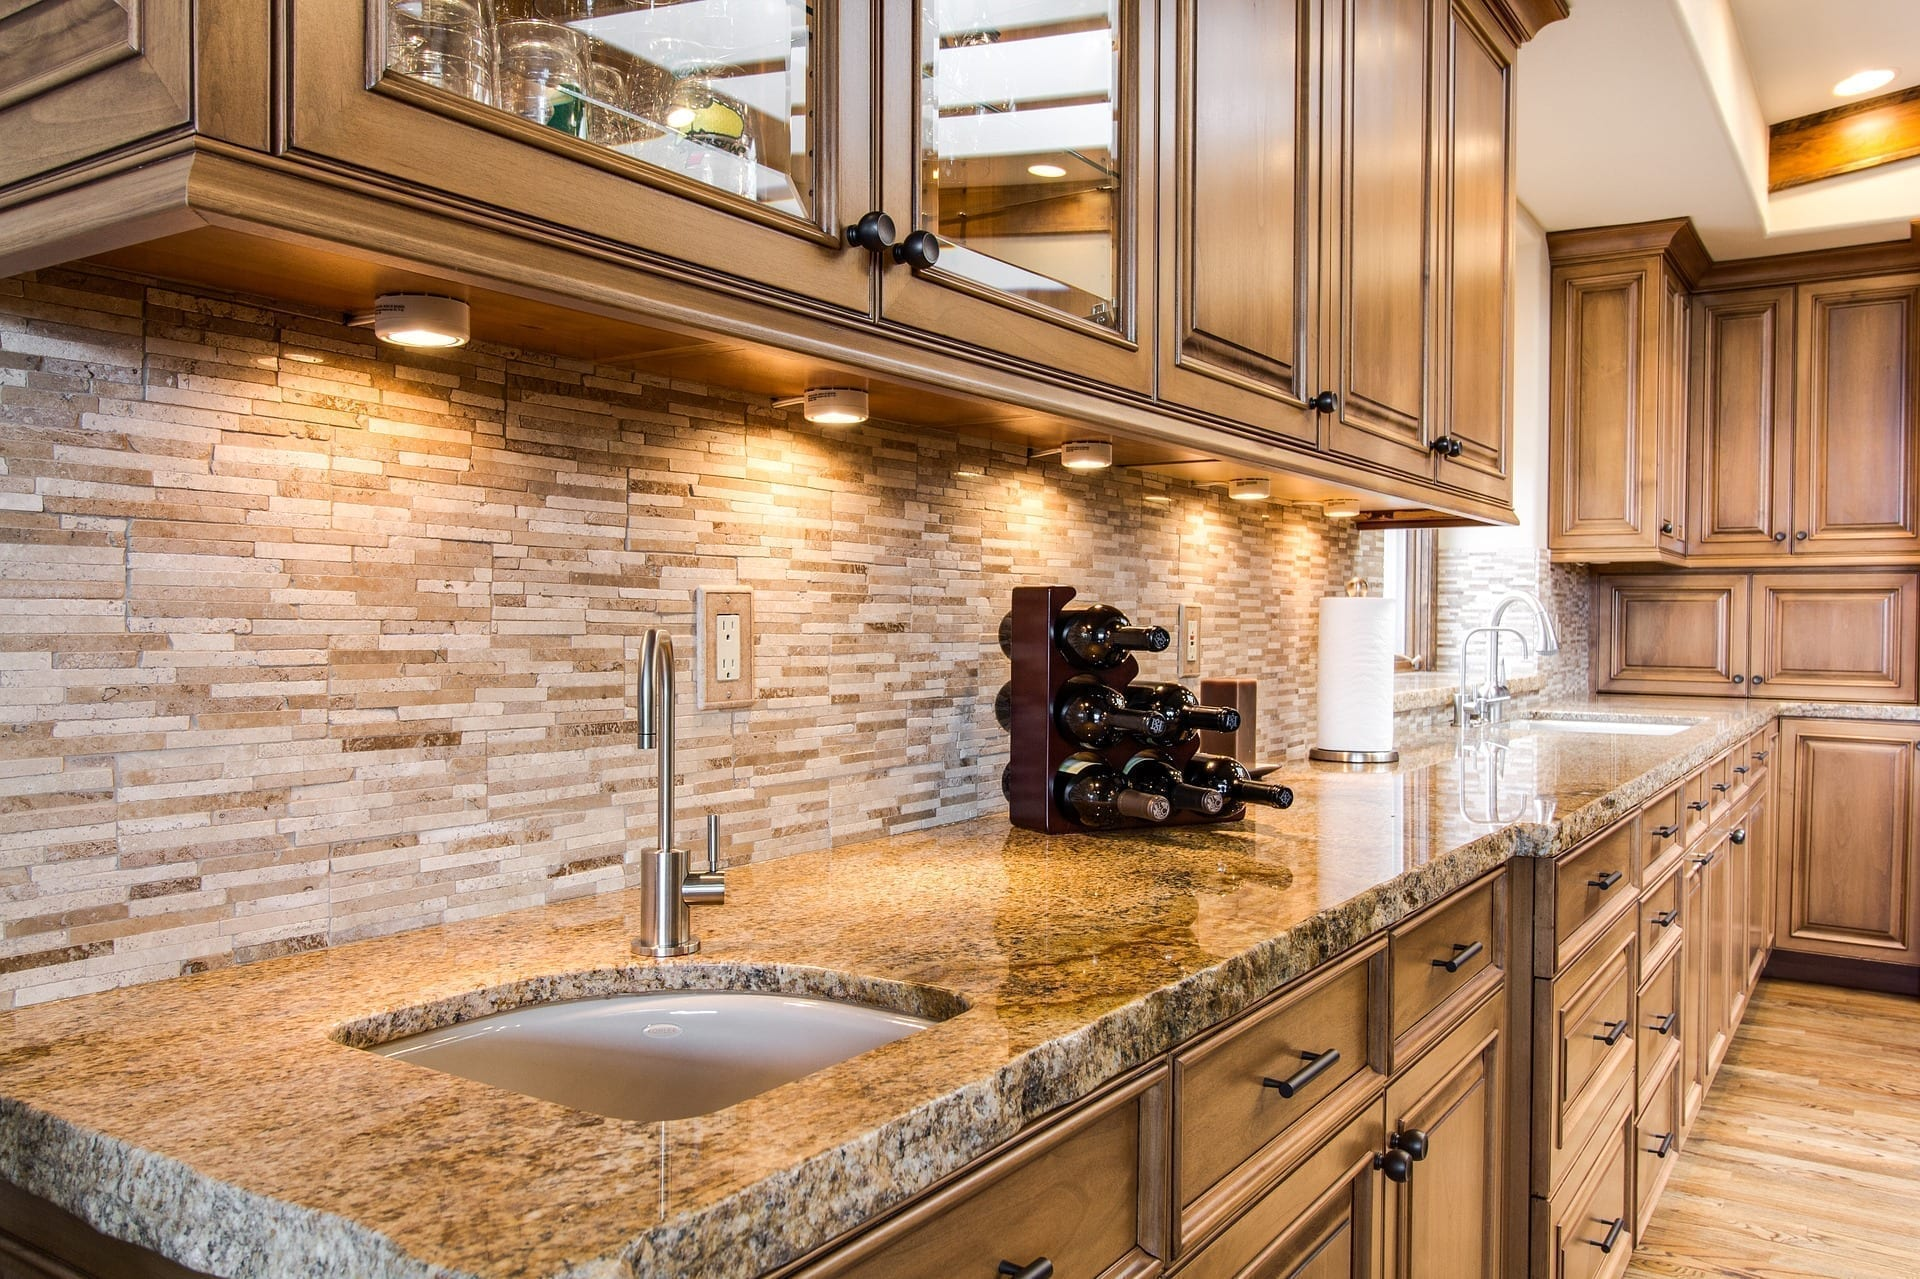 Brown granite countertop and wood cabinets with sink and wine